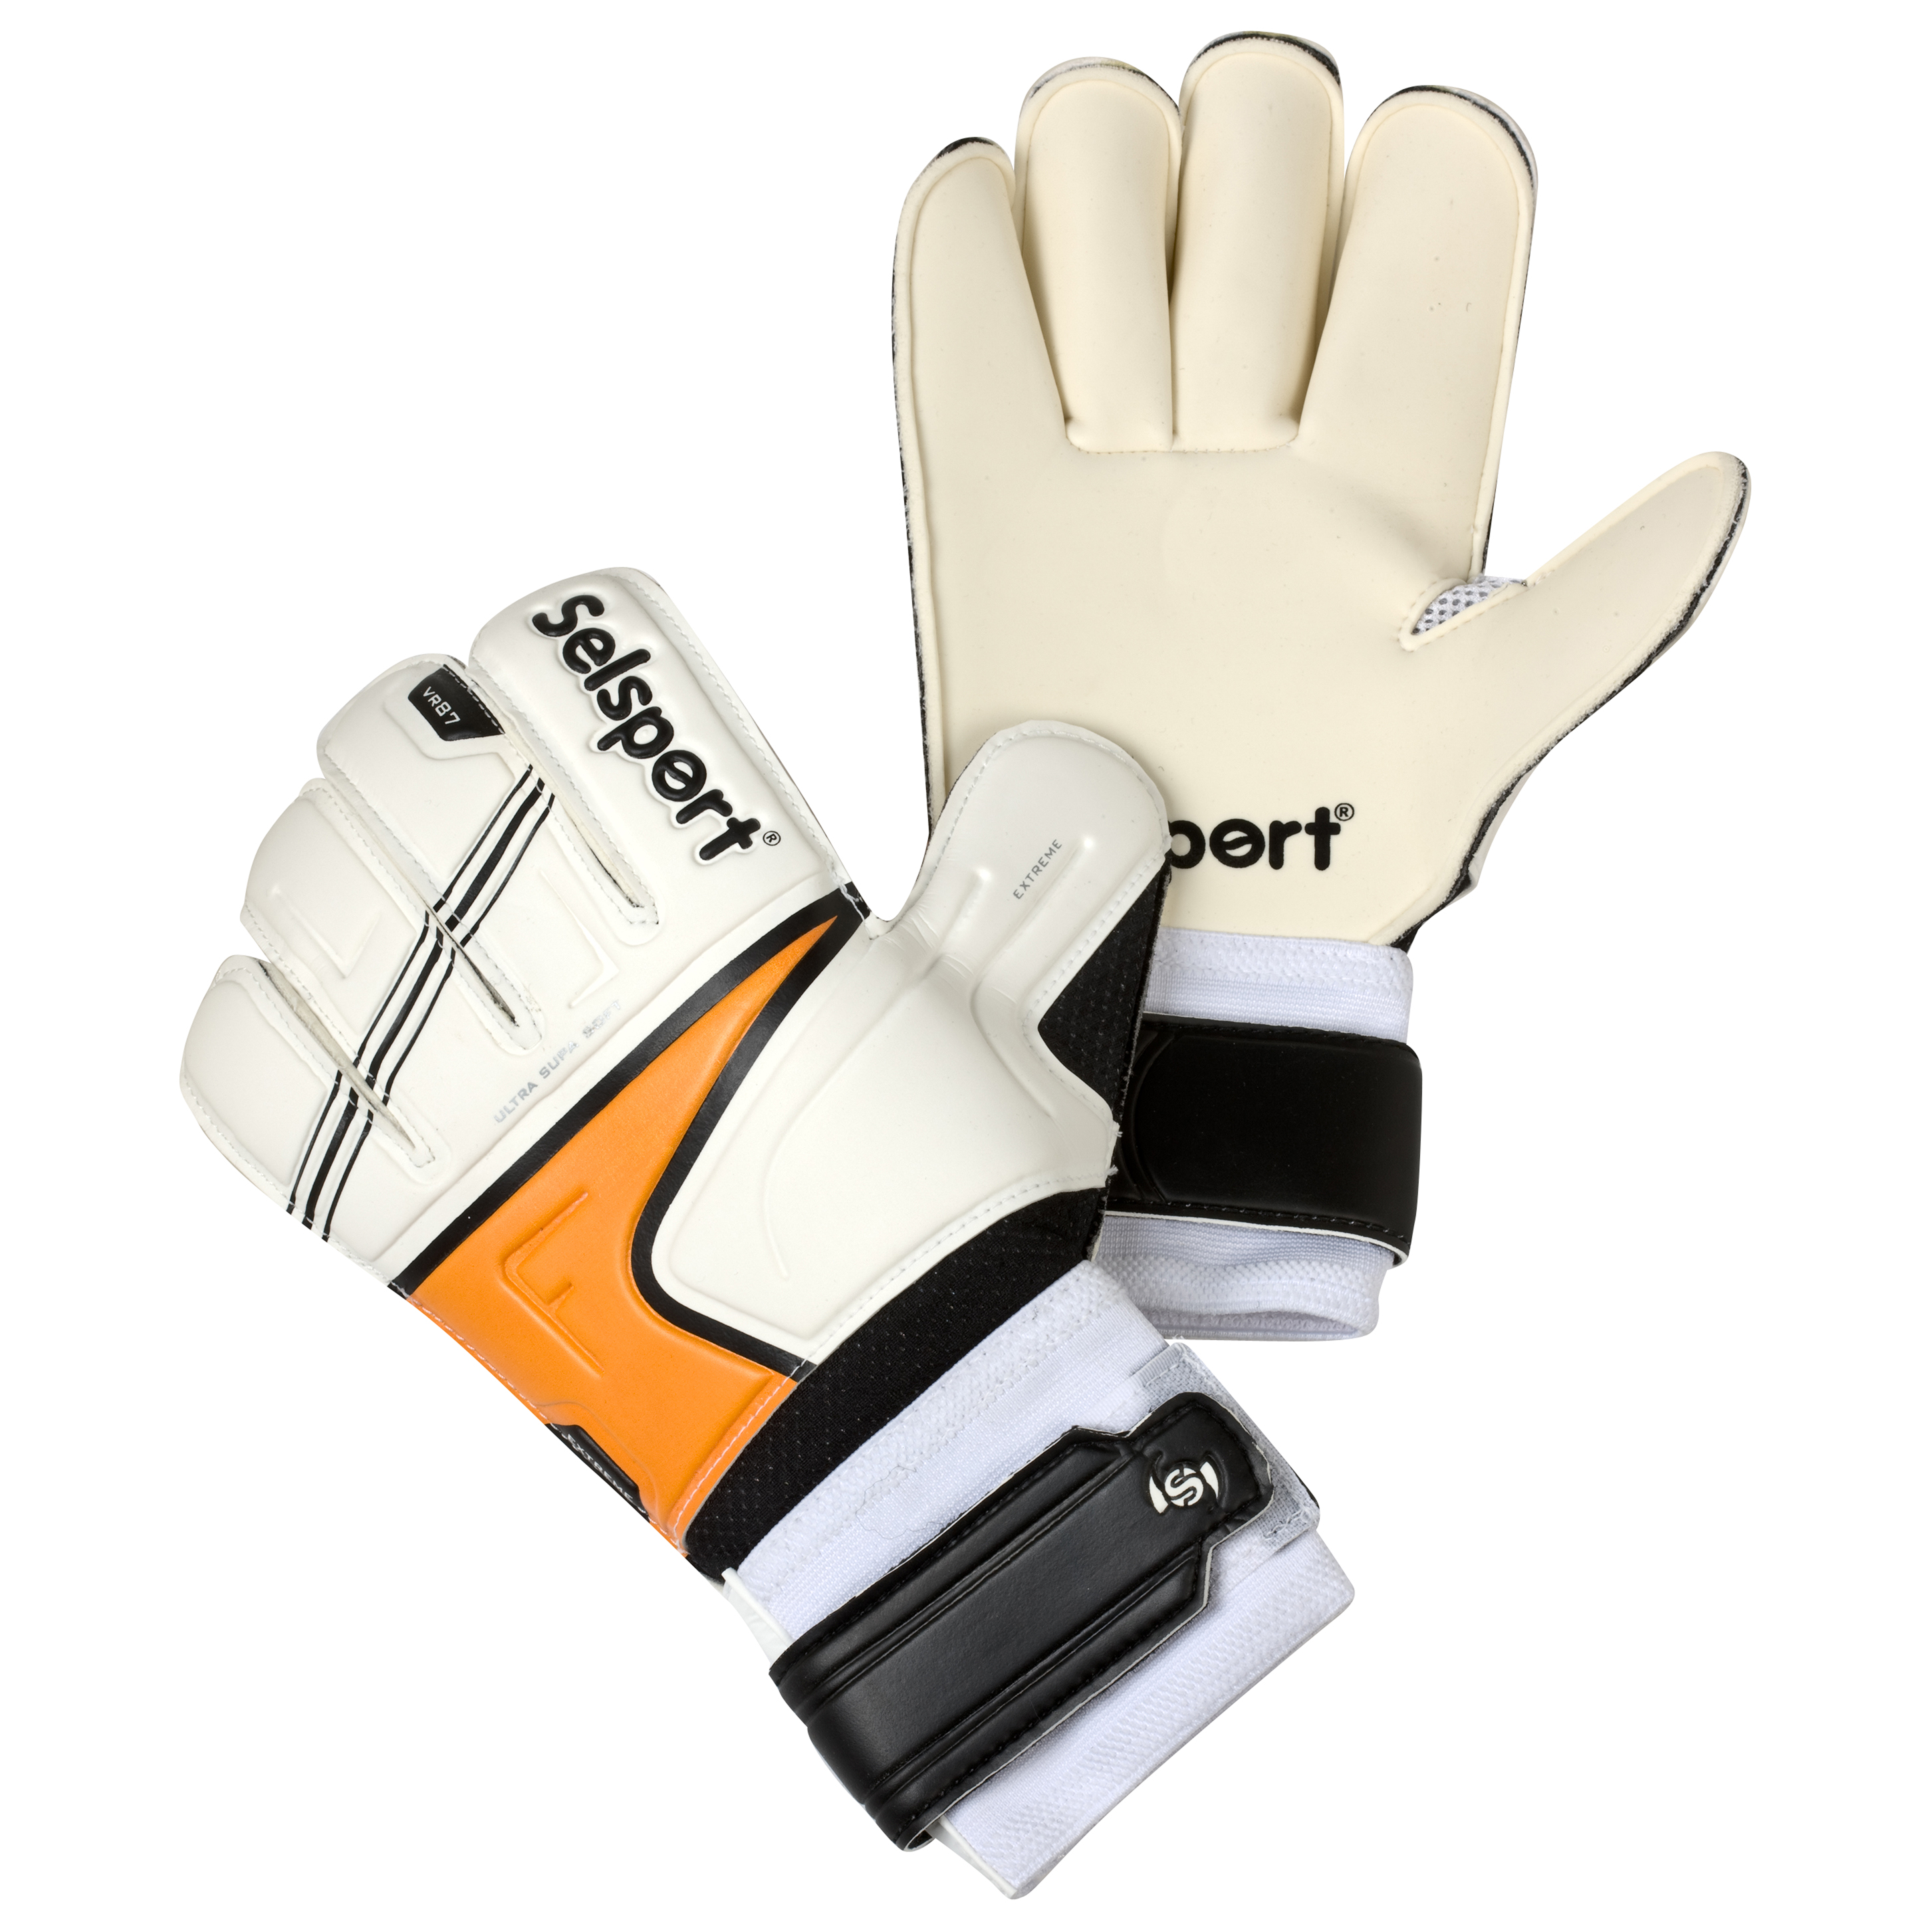 Selsport Extreme Replica Goalkeeper Gloves